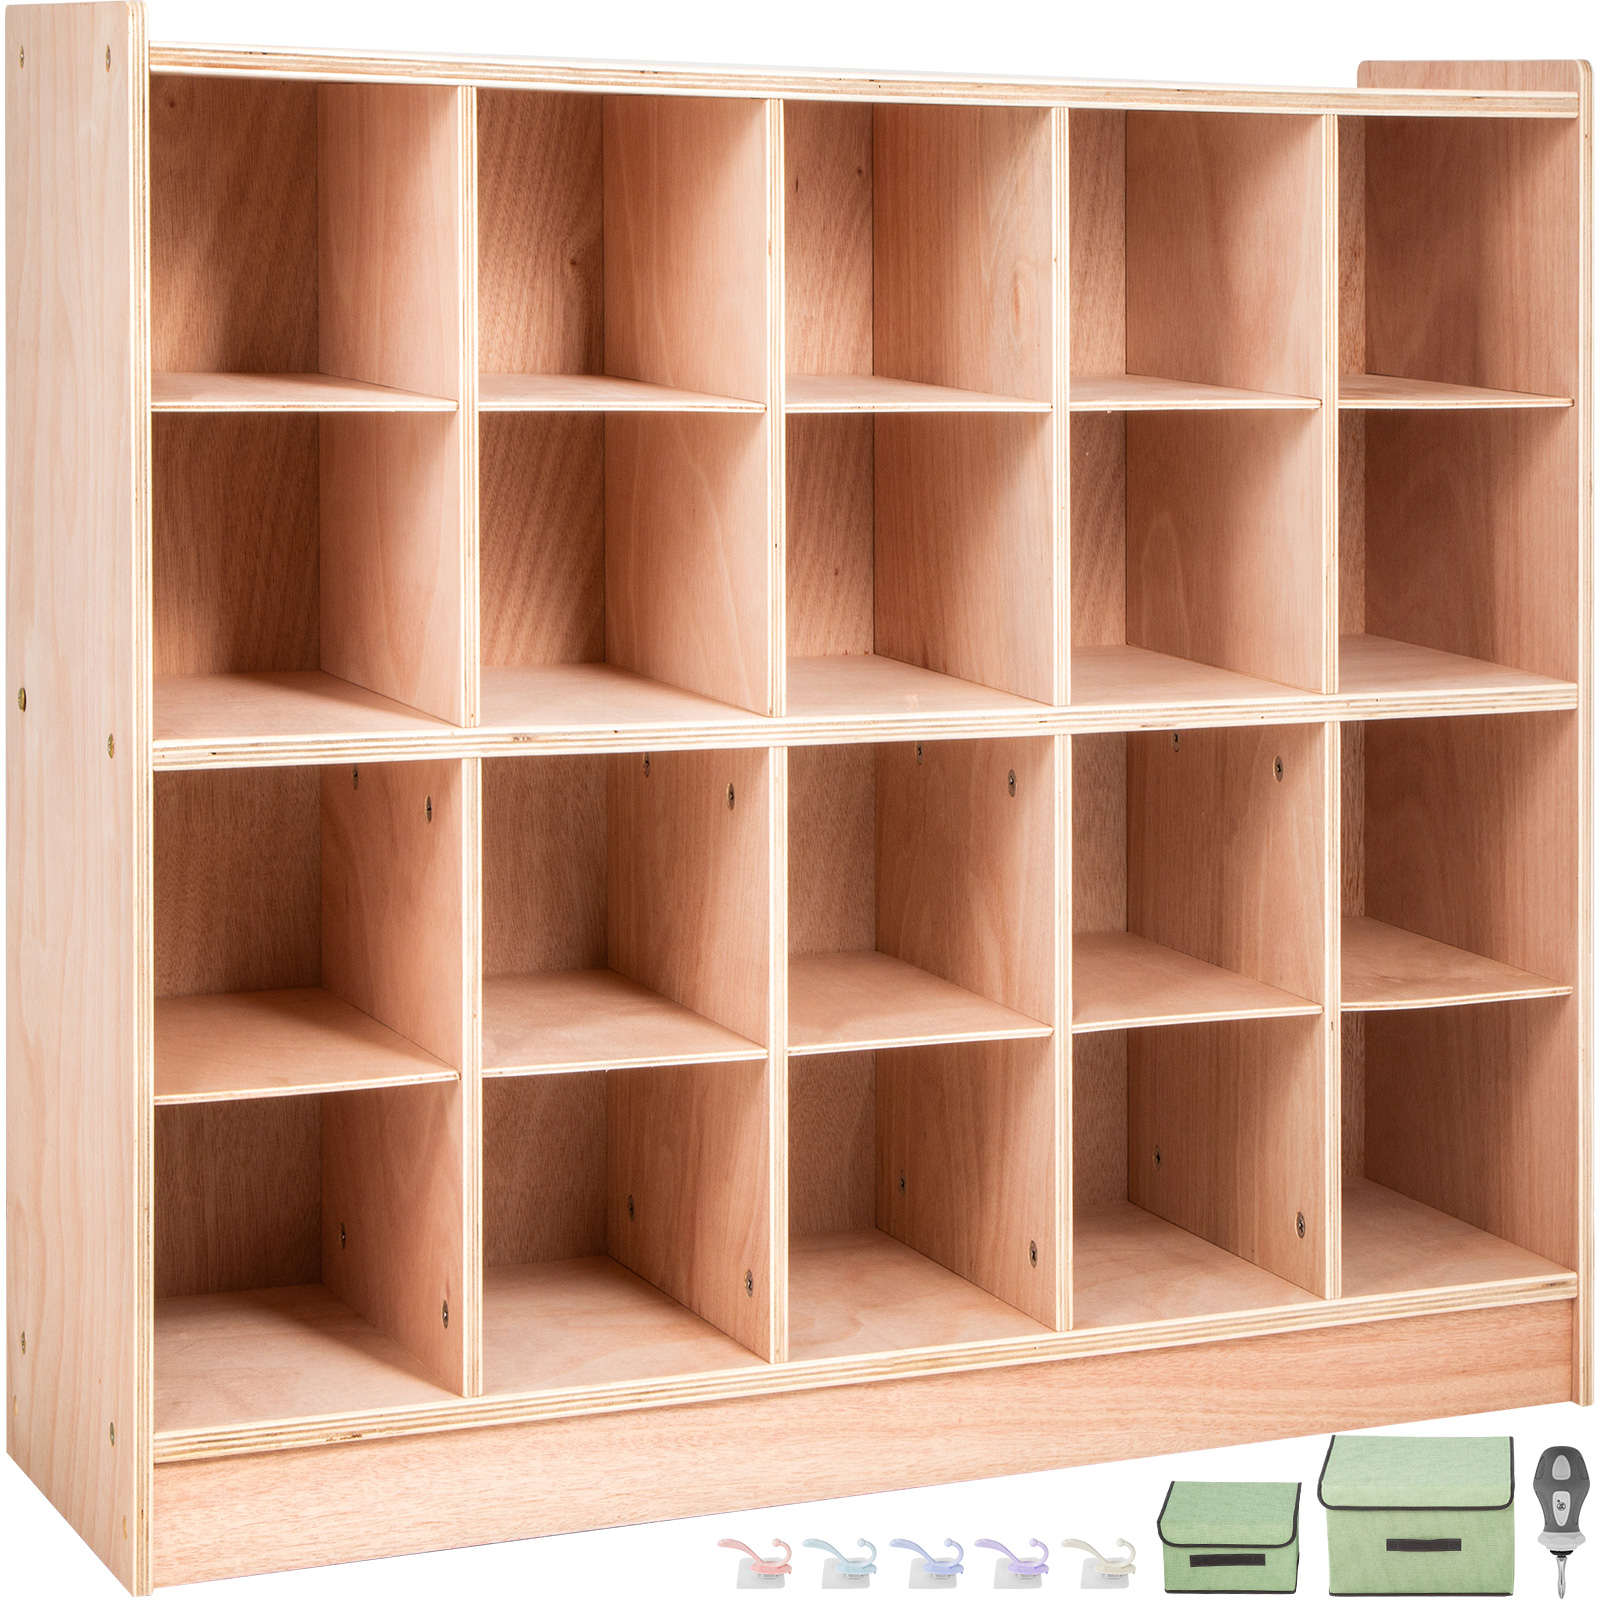 Classroom-Storage-Cabinet-Wooden-Cubby-20-Grids-Organizer-W-Casters-Non-toxic